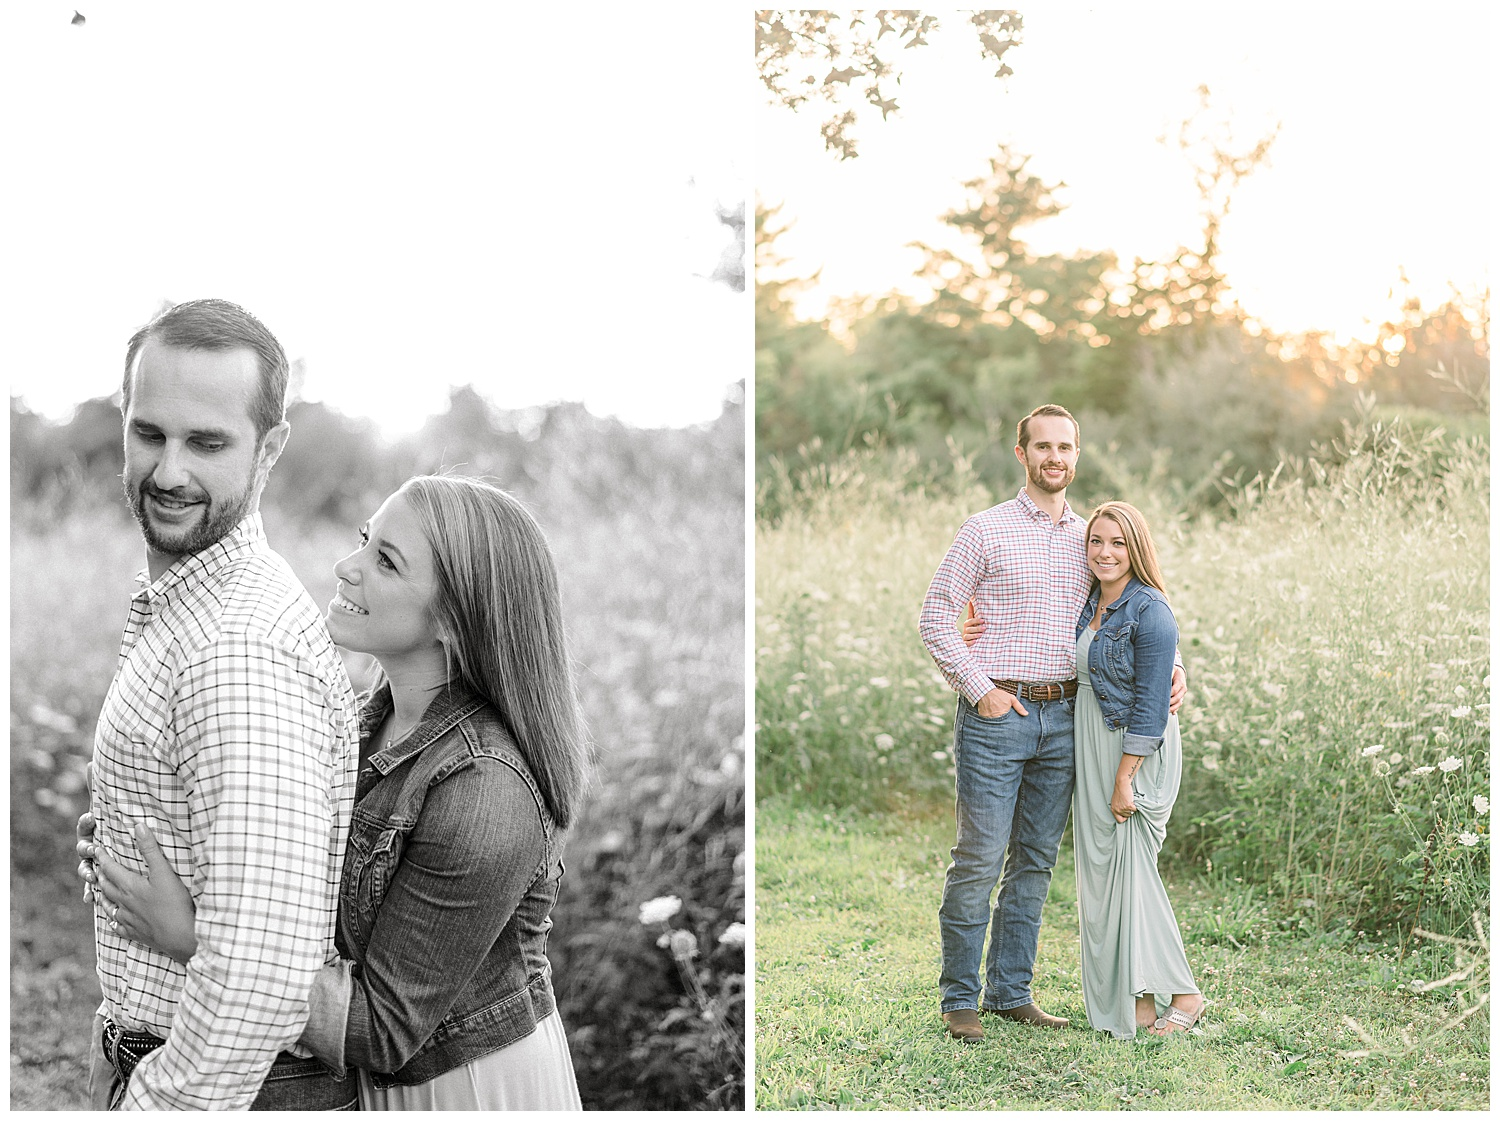 Cox_Arboretum_Anniversary_Session_Miamisburg_Ohio_Cassandra_Janina_Photography_Ohio_Wedding_Photographer_0270.jpg